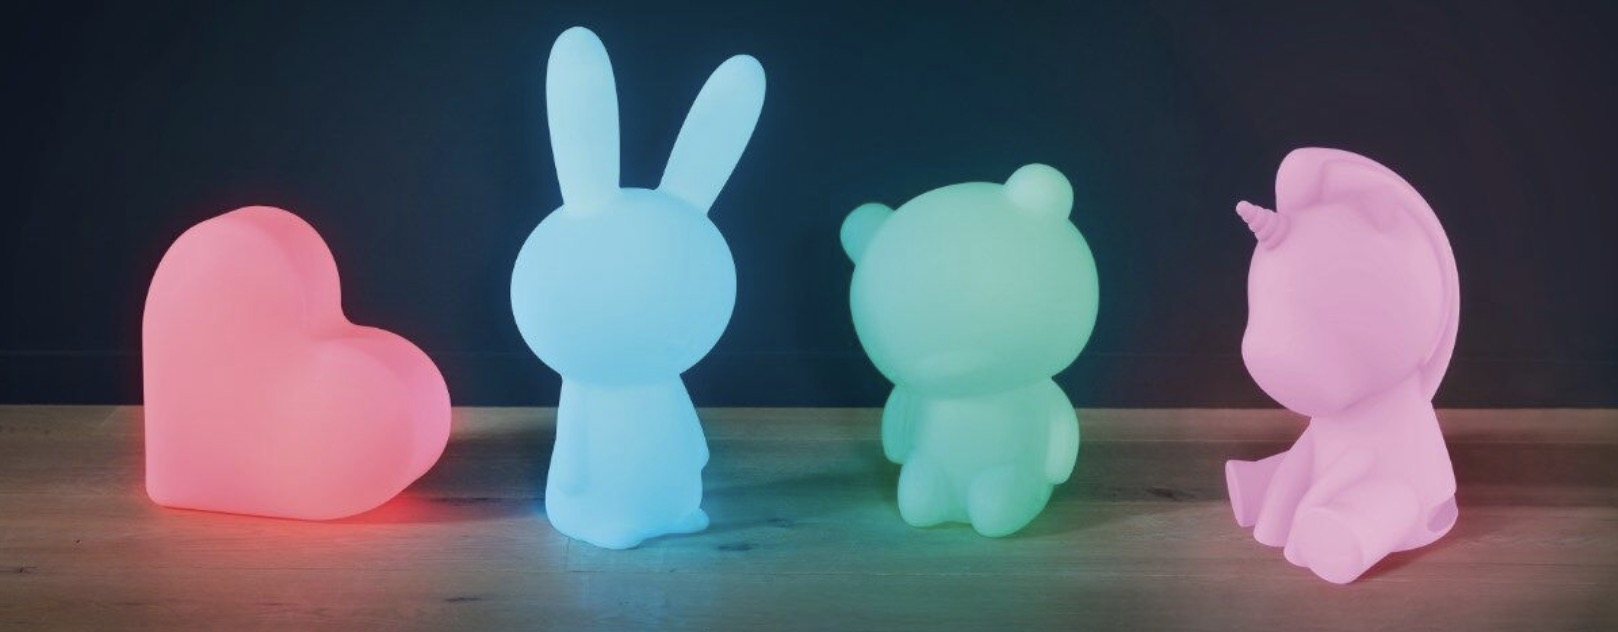 luminus-bluetooth-lapin-coeur-smart